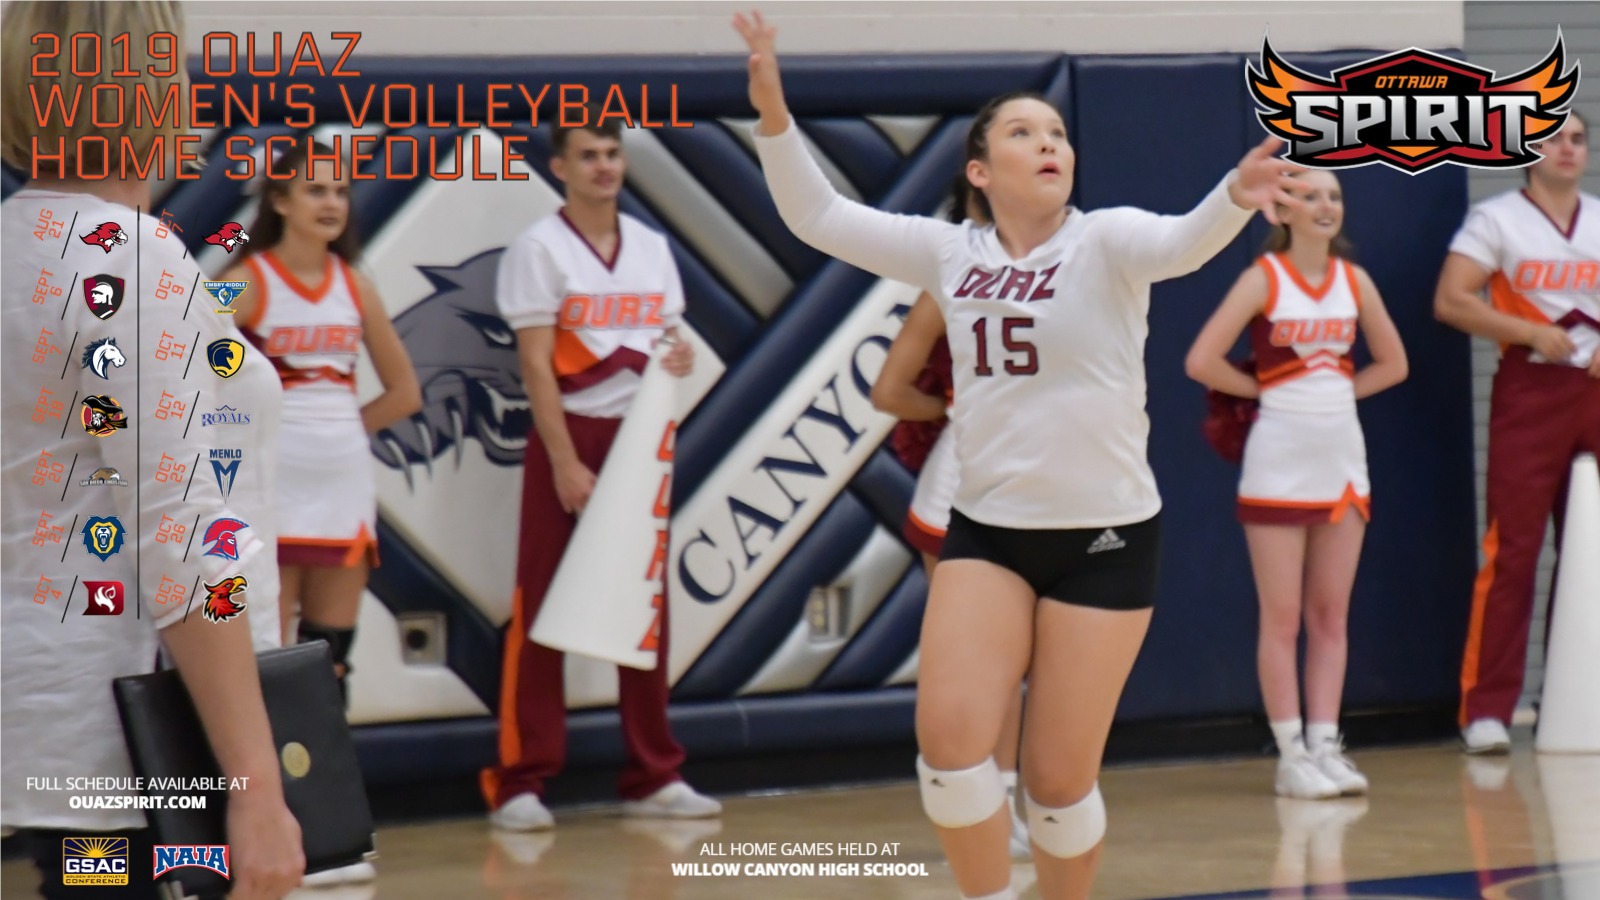 Women's Volleyball - OUAZ Athletics